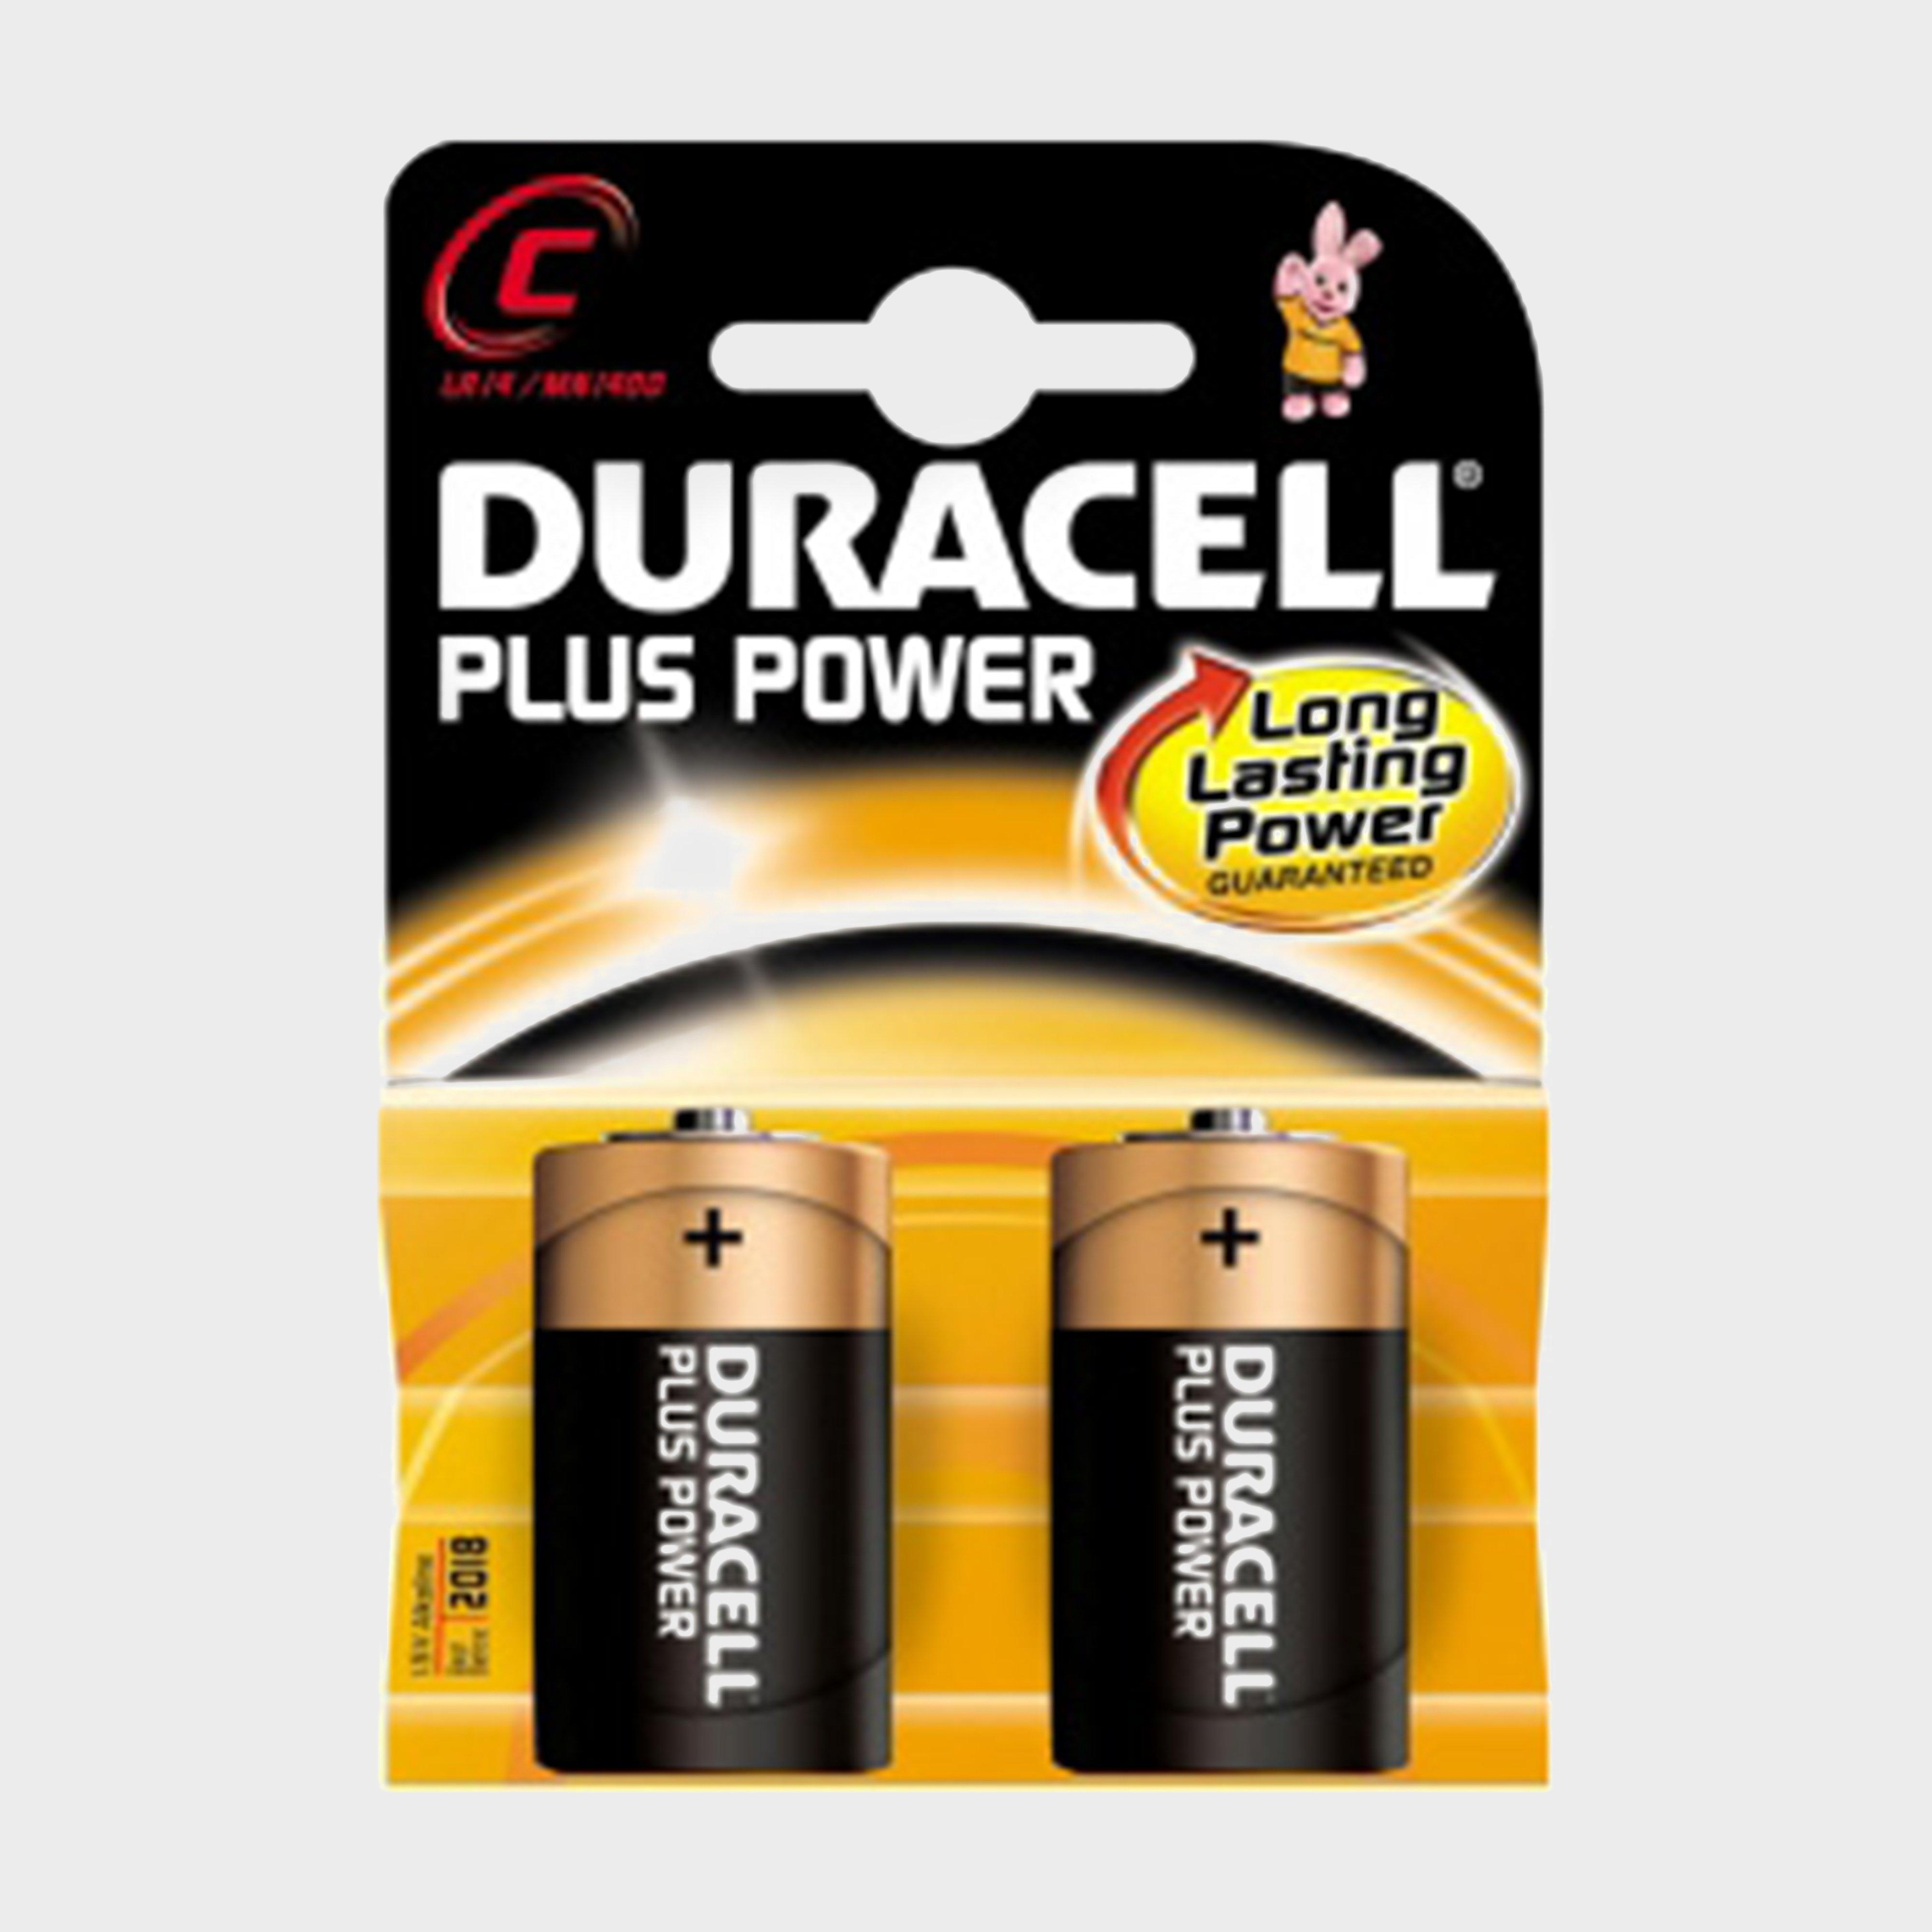 Duracell Plus Power MN1400 C Batteries 2 Pack, Orange/Orange